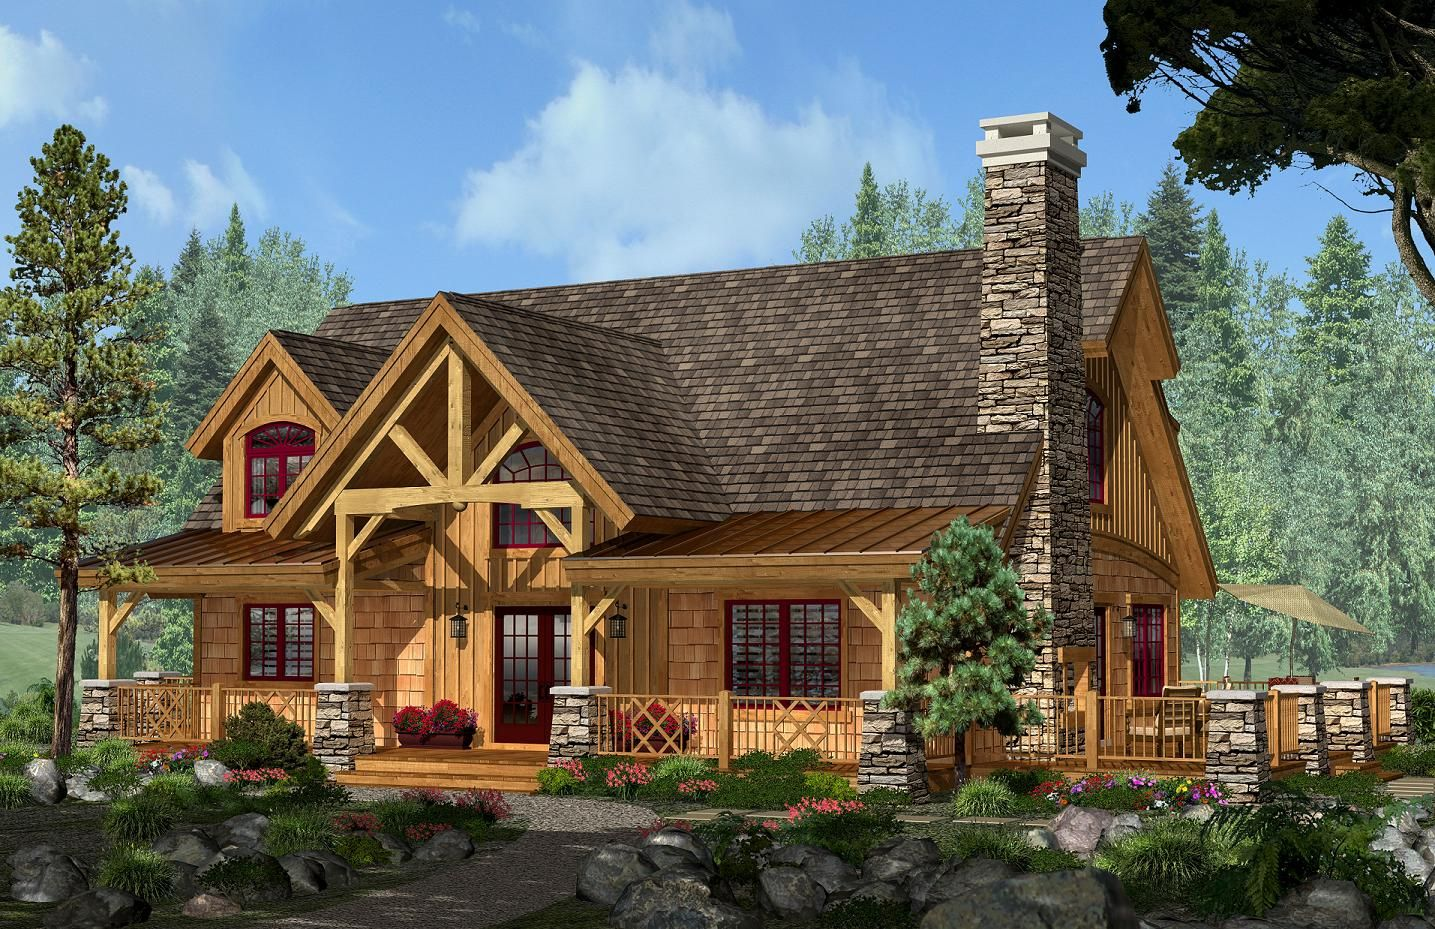 Adirondack cottage from the adirondack series elevation for Adirondack home plans